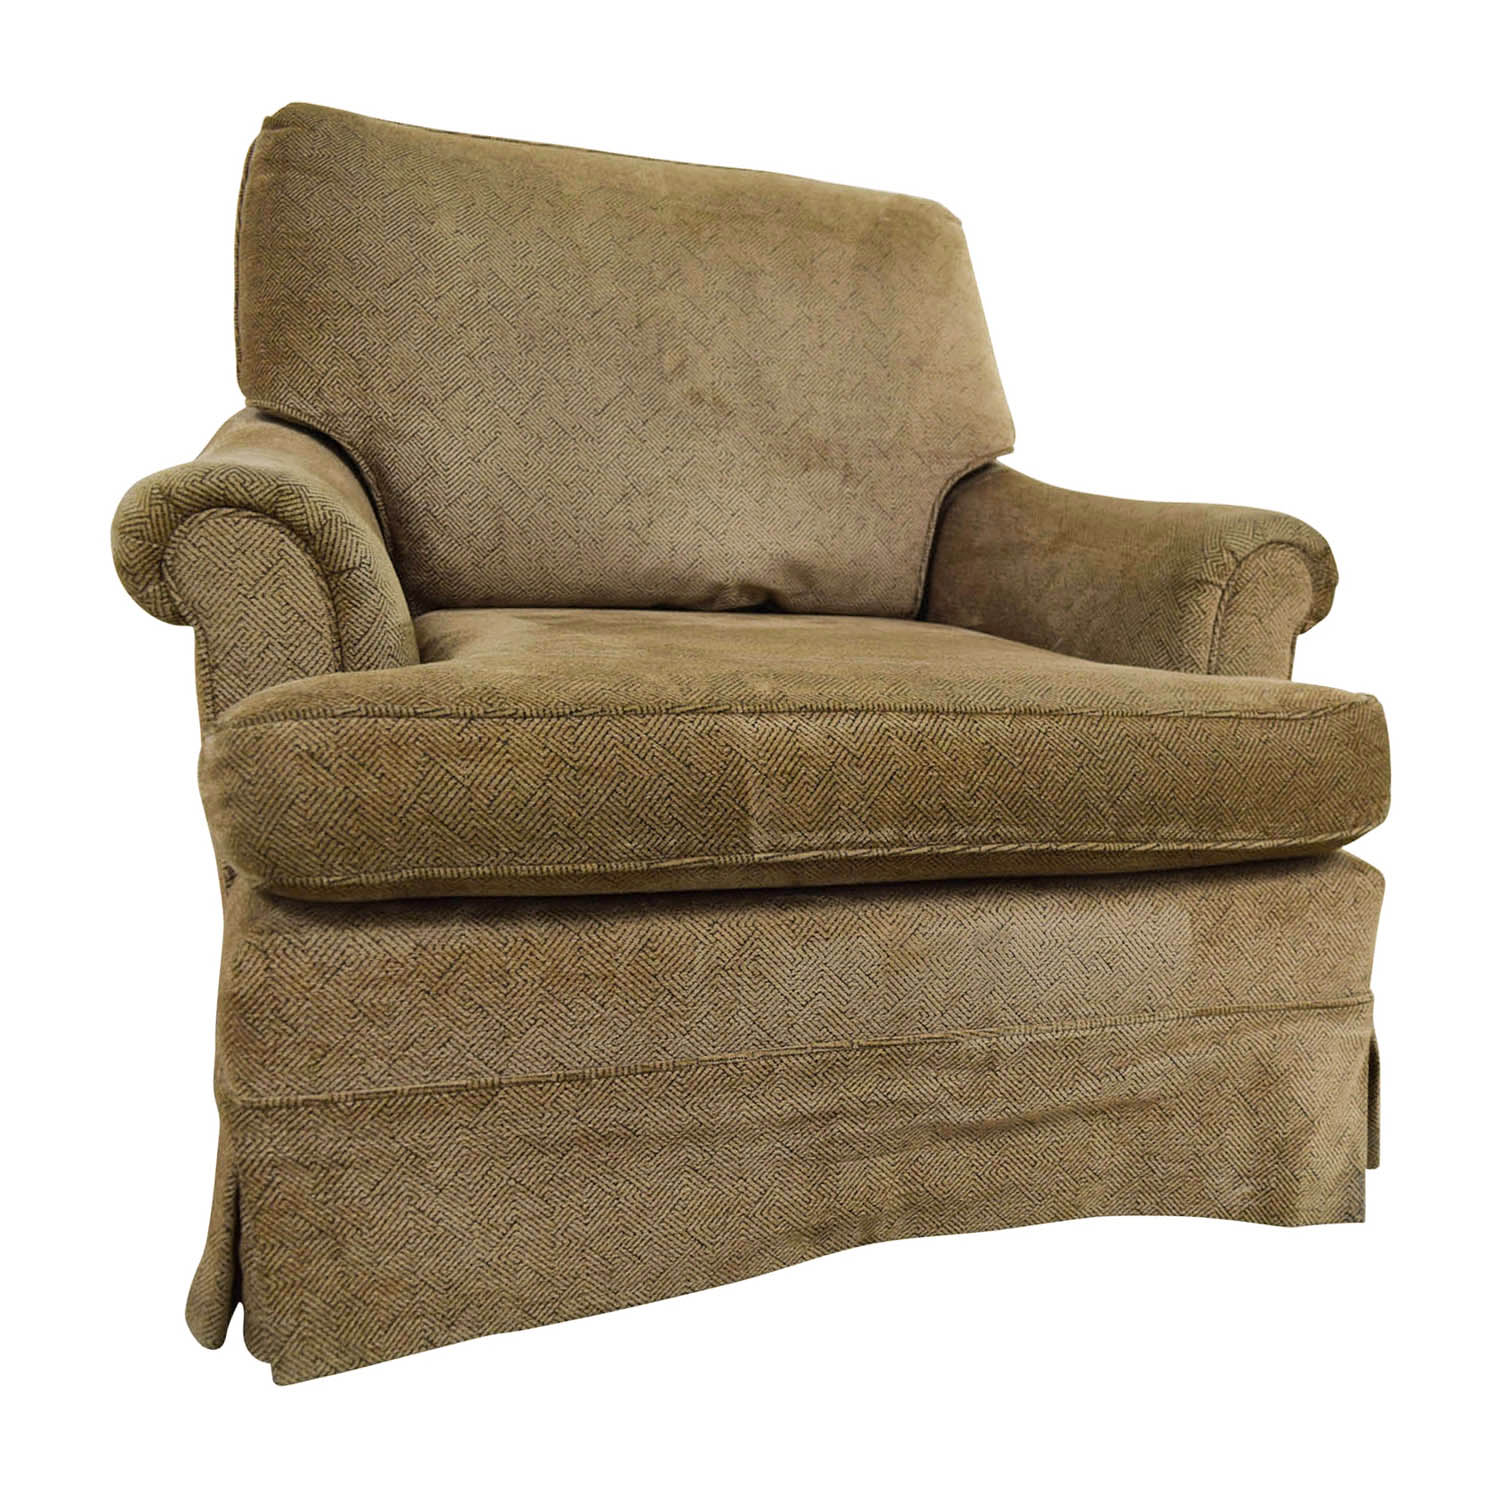 Tan Accent Chair 90 Off Tan Upholstered Accent Chair With Foot Stool